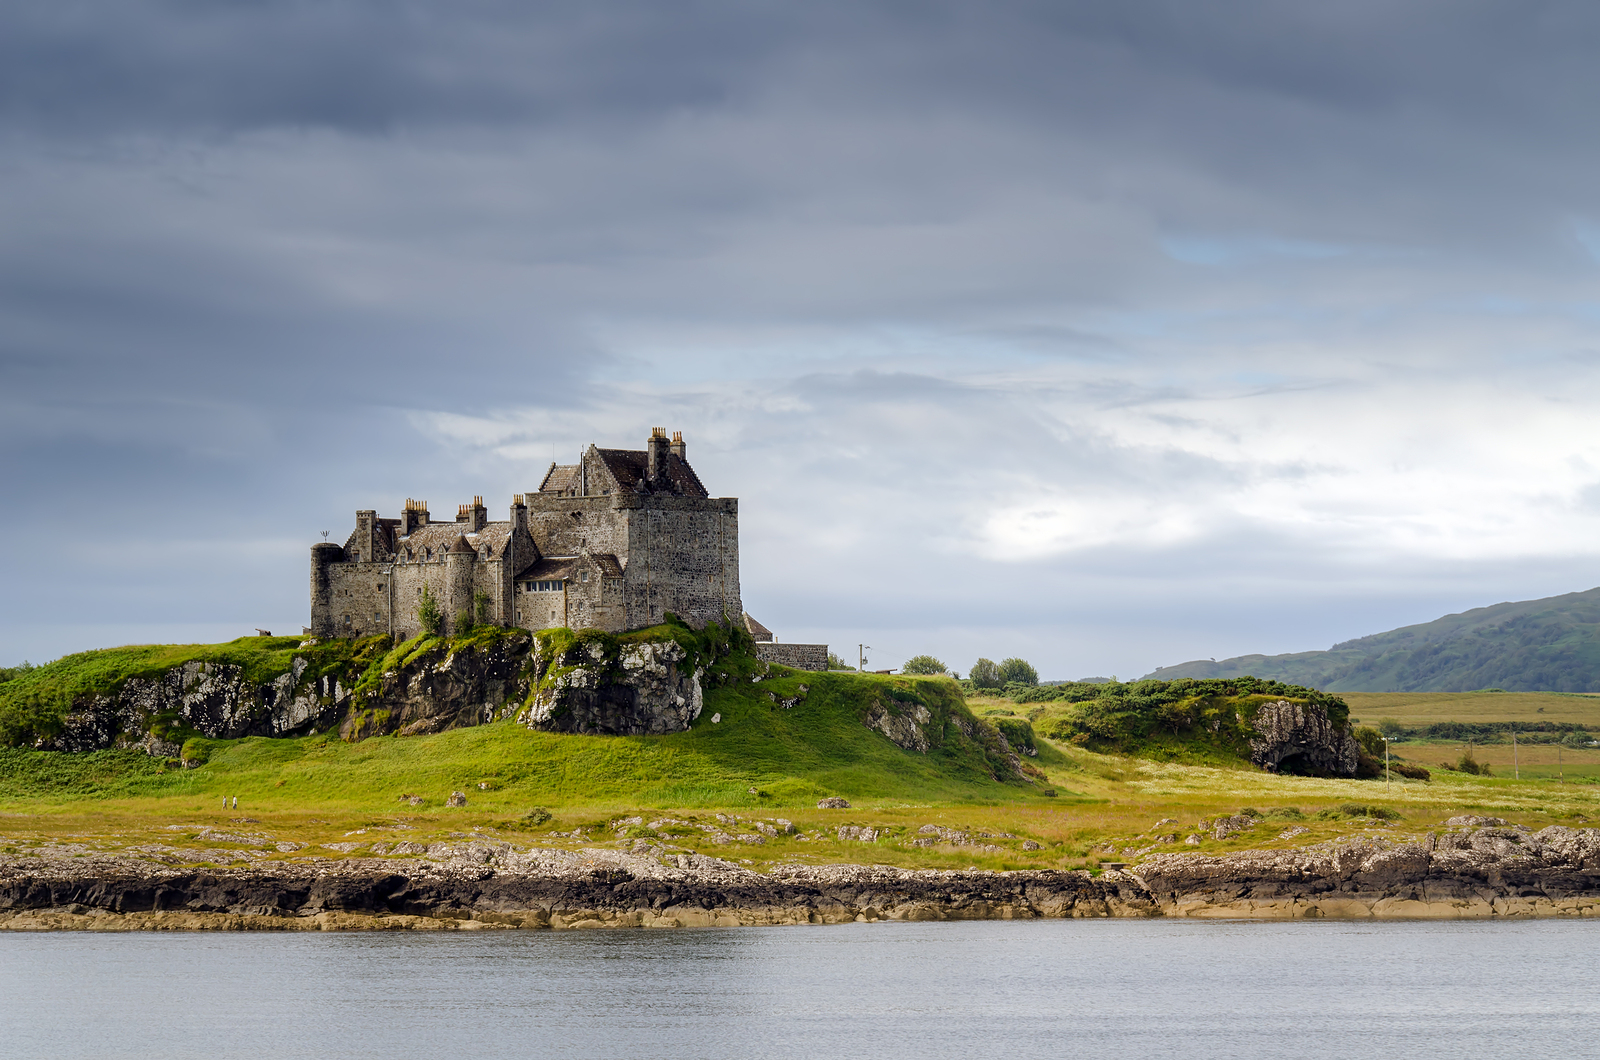 Enjoy a private tour of Duart Castle, Scotland with Drumscot, near the Isle of Staffa